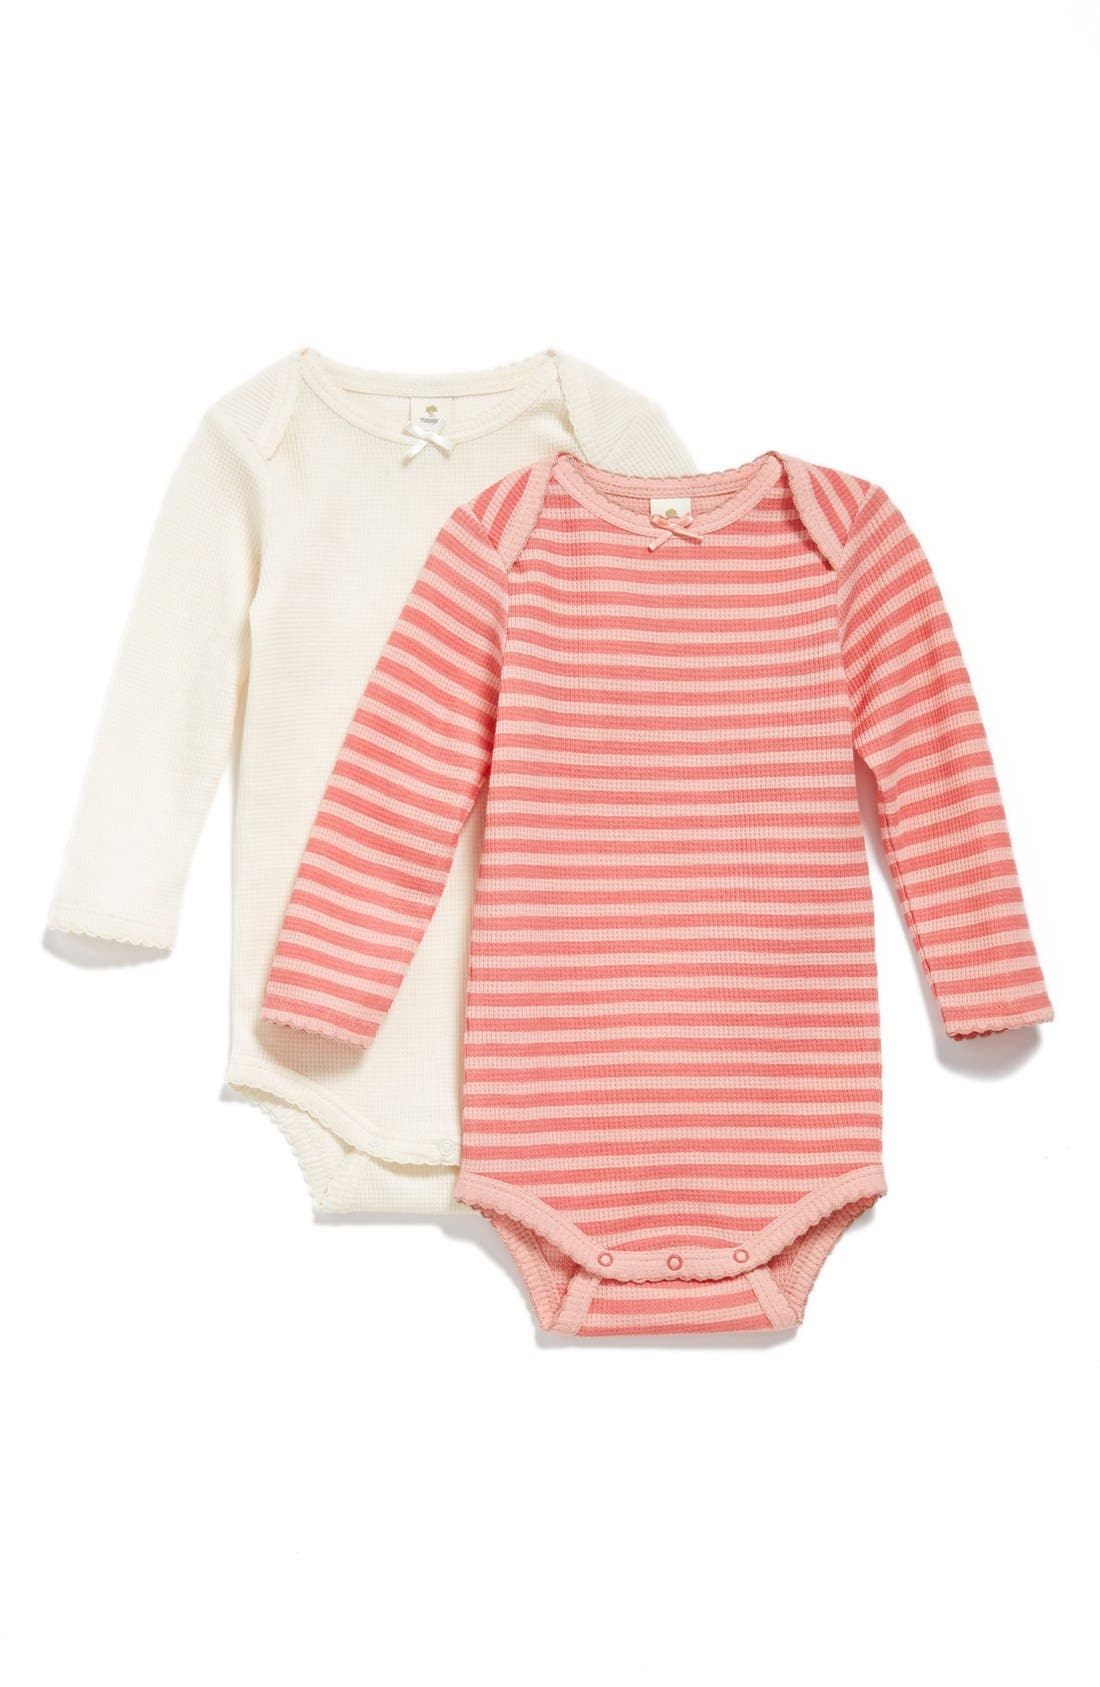 Main Image - Tucker + Tate Scallop Trim Waffle Weave Bodysuit (2-Pack) (Baby Girls)